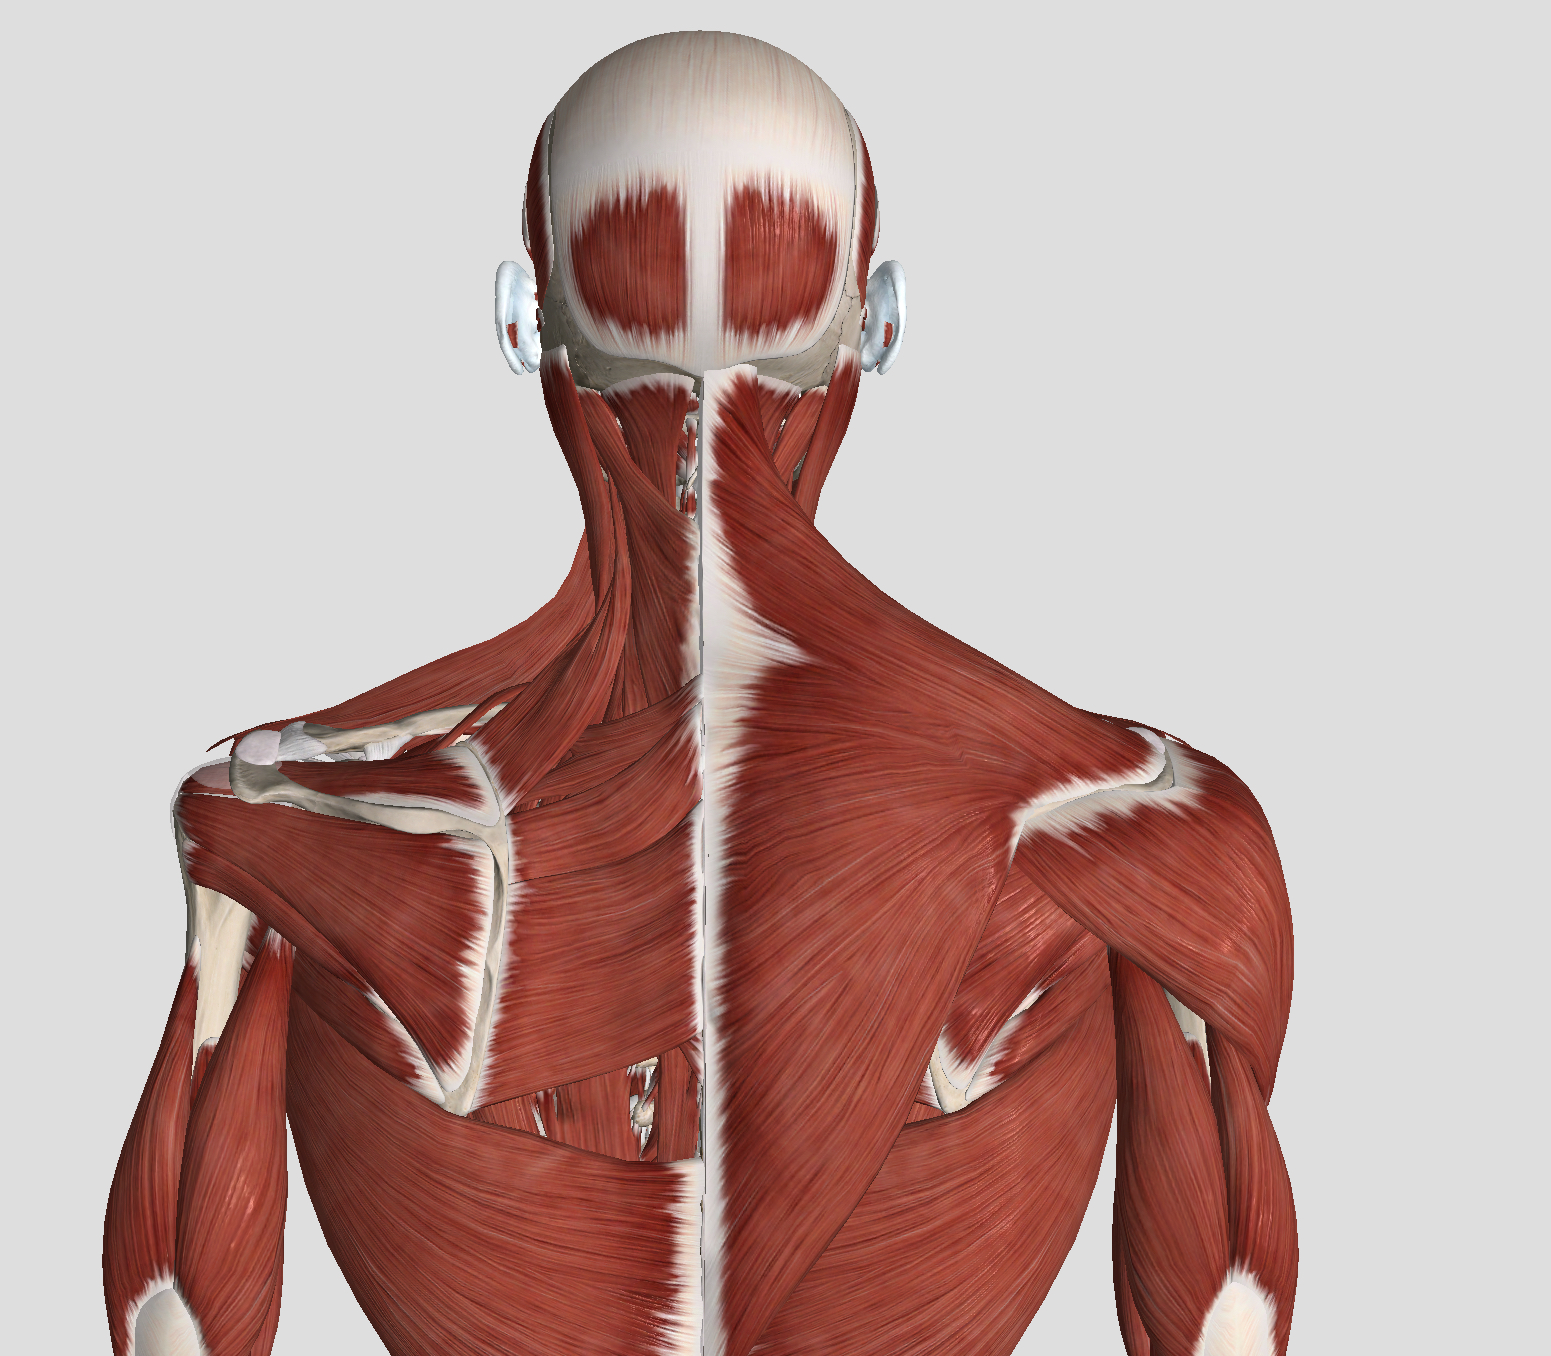 Do you get neck pain when you get stressed?